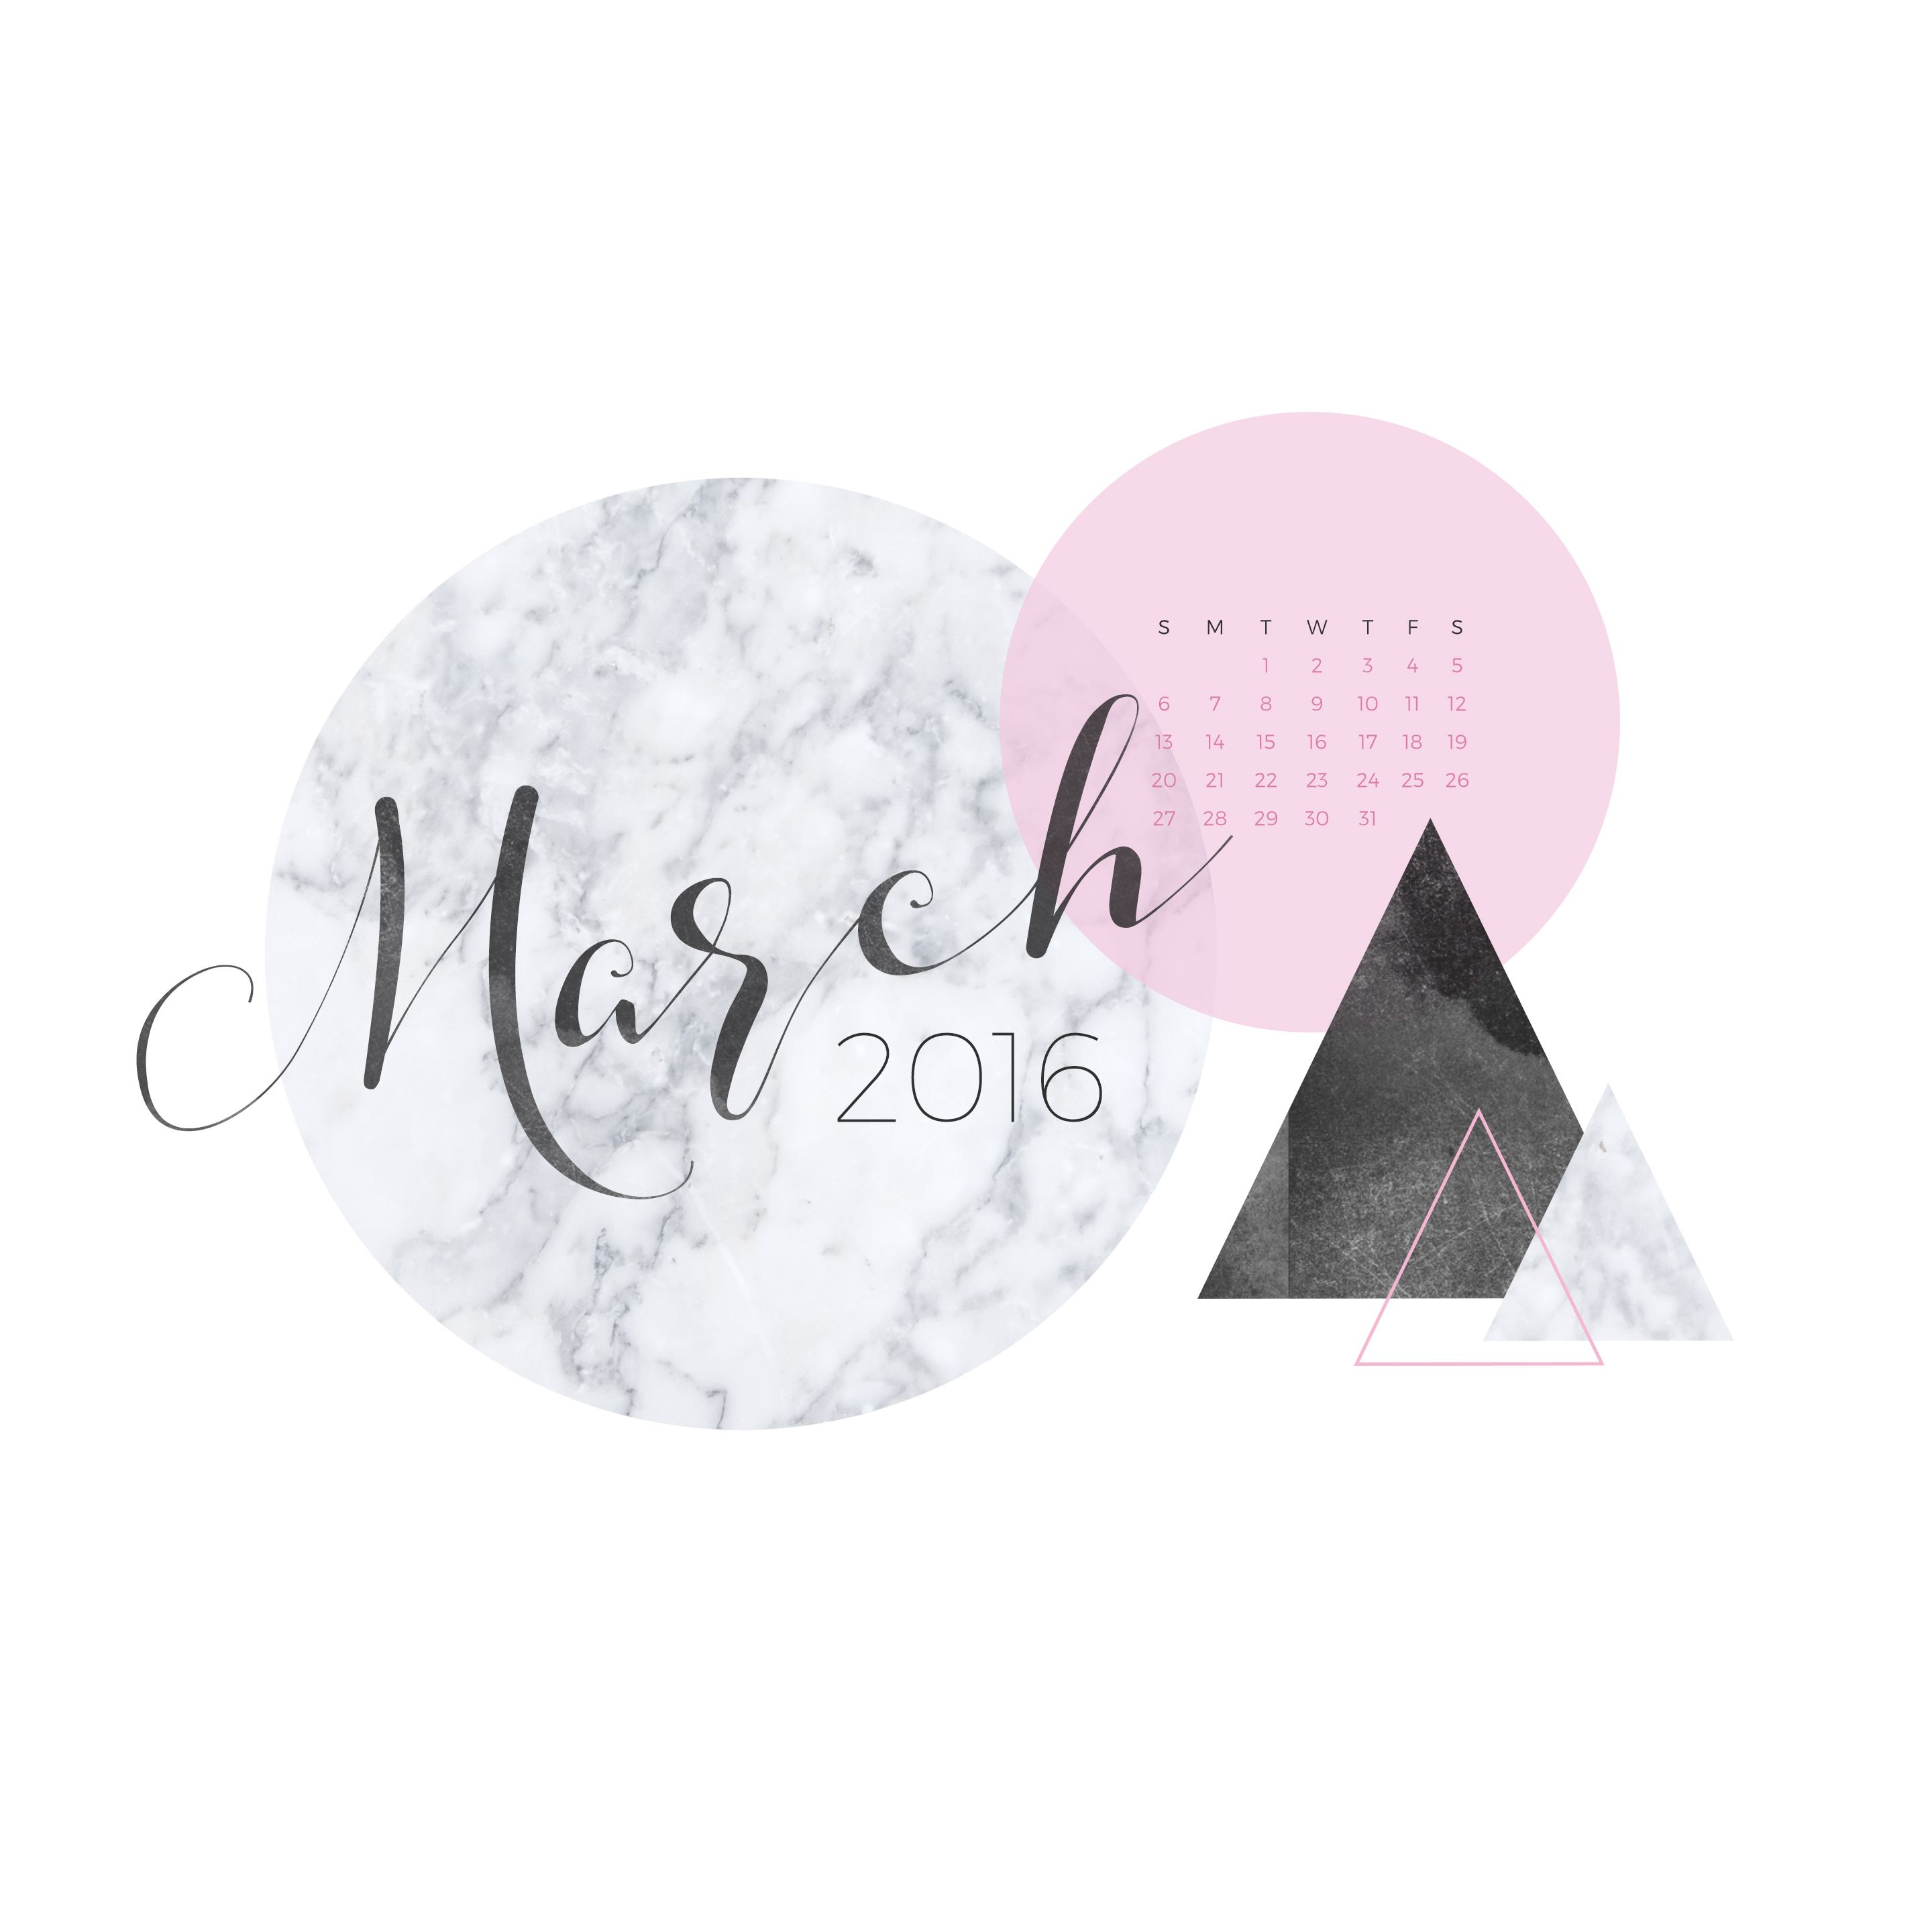 March 2016 Desktop Calendar Wallpaper Paper Leaf 2880x2880